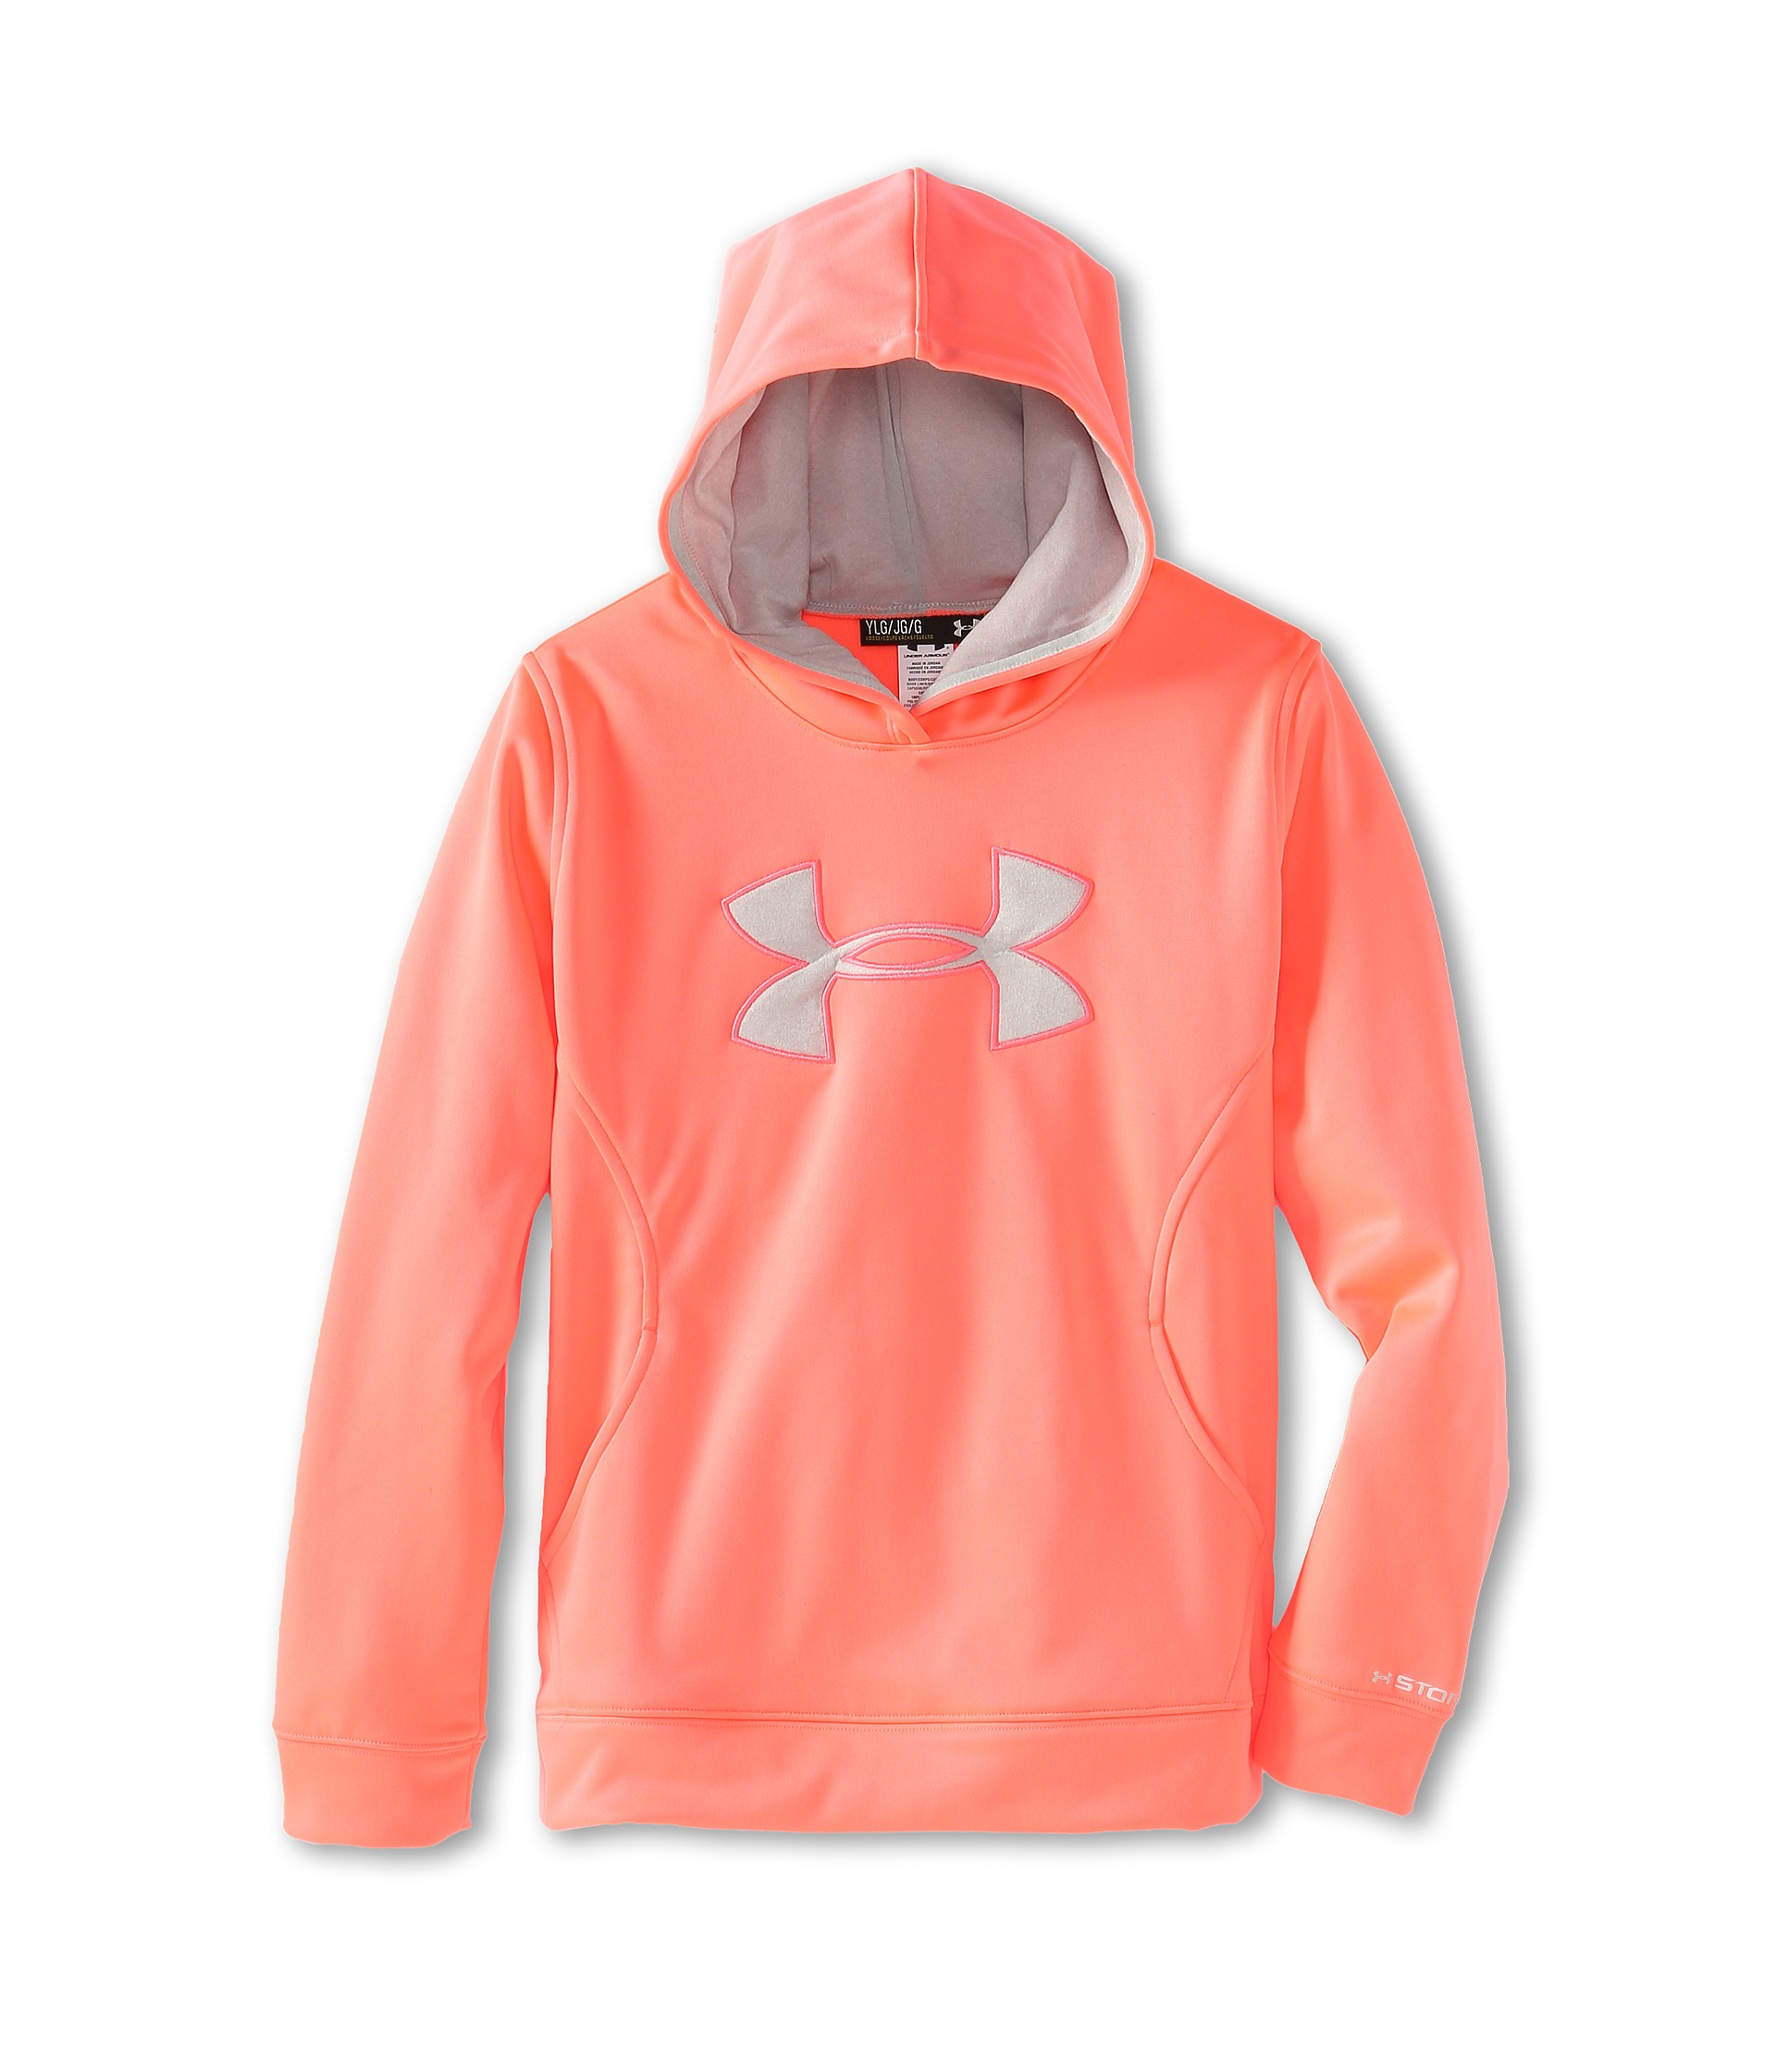 Under Armour Sweatshirts For Women On Sale Under armour kids armourUnder Armour Sweatshirts Orange